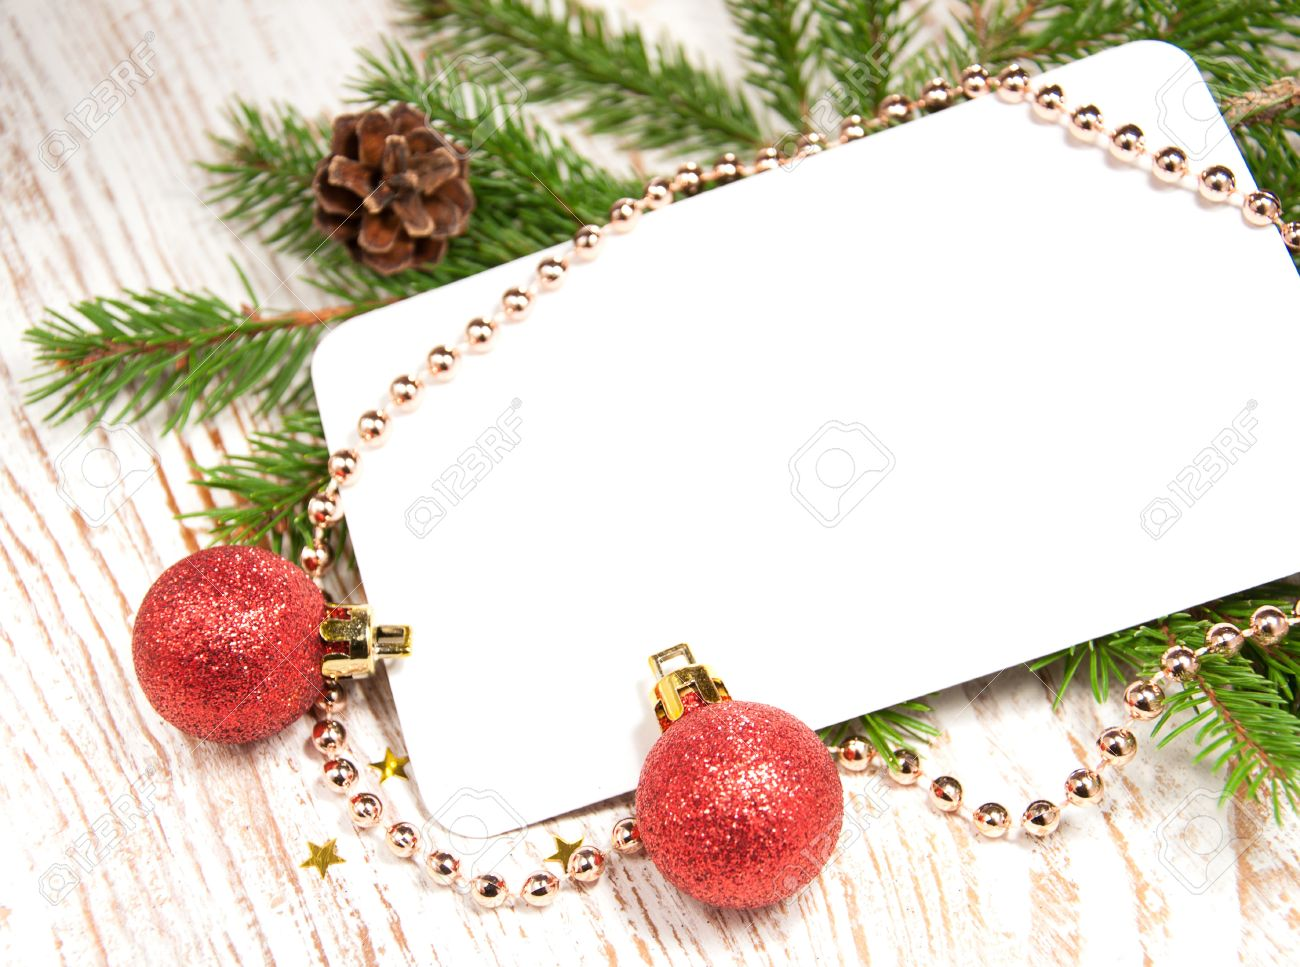 Blank Christmas Card Or Invitation With Decorations Stock Photo ...